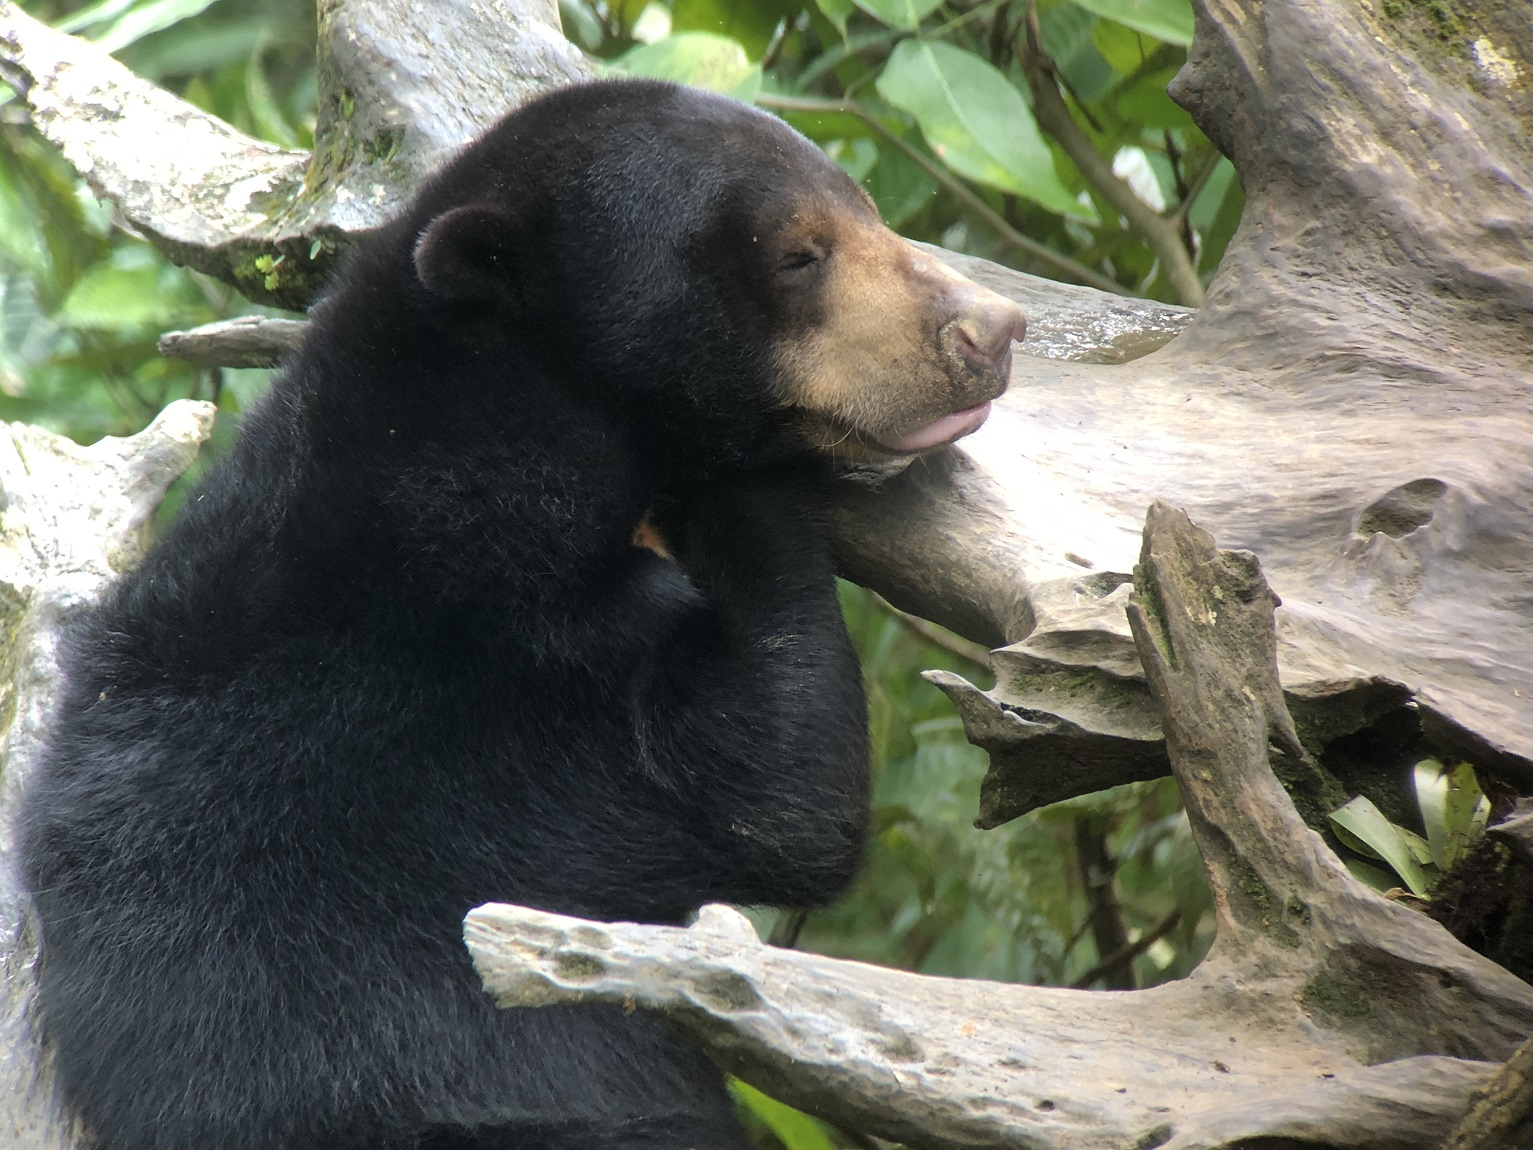 Not to be missed at Sepilok: adorable sun-bears (the world's smallest bear)